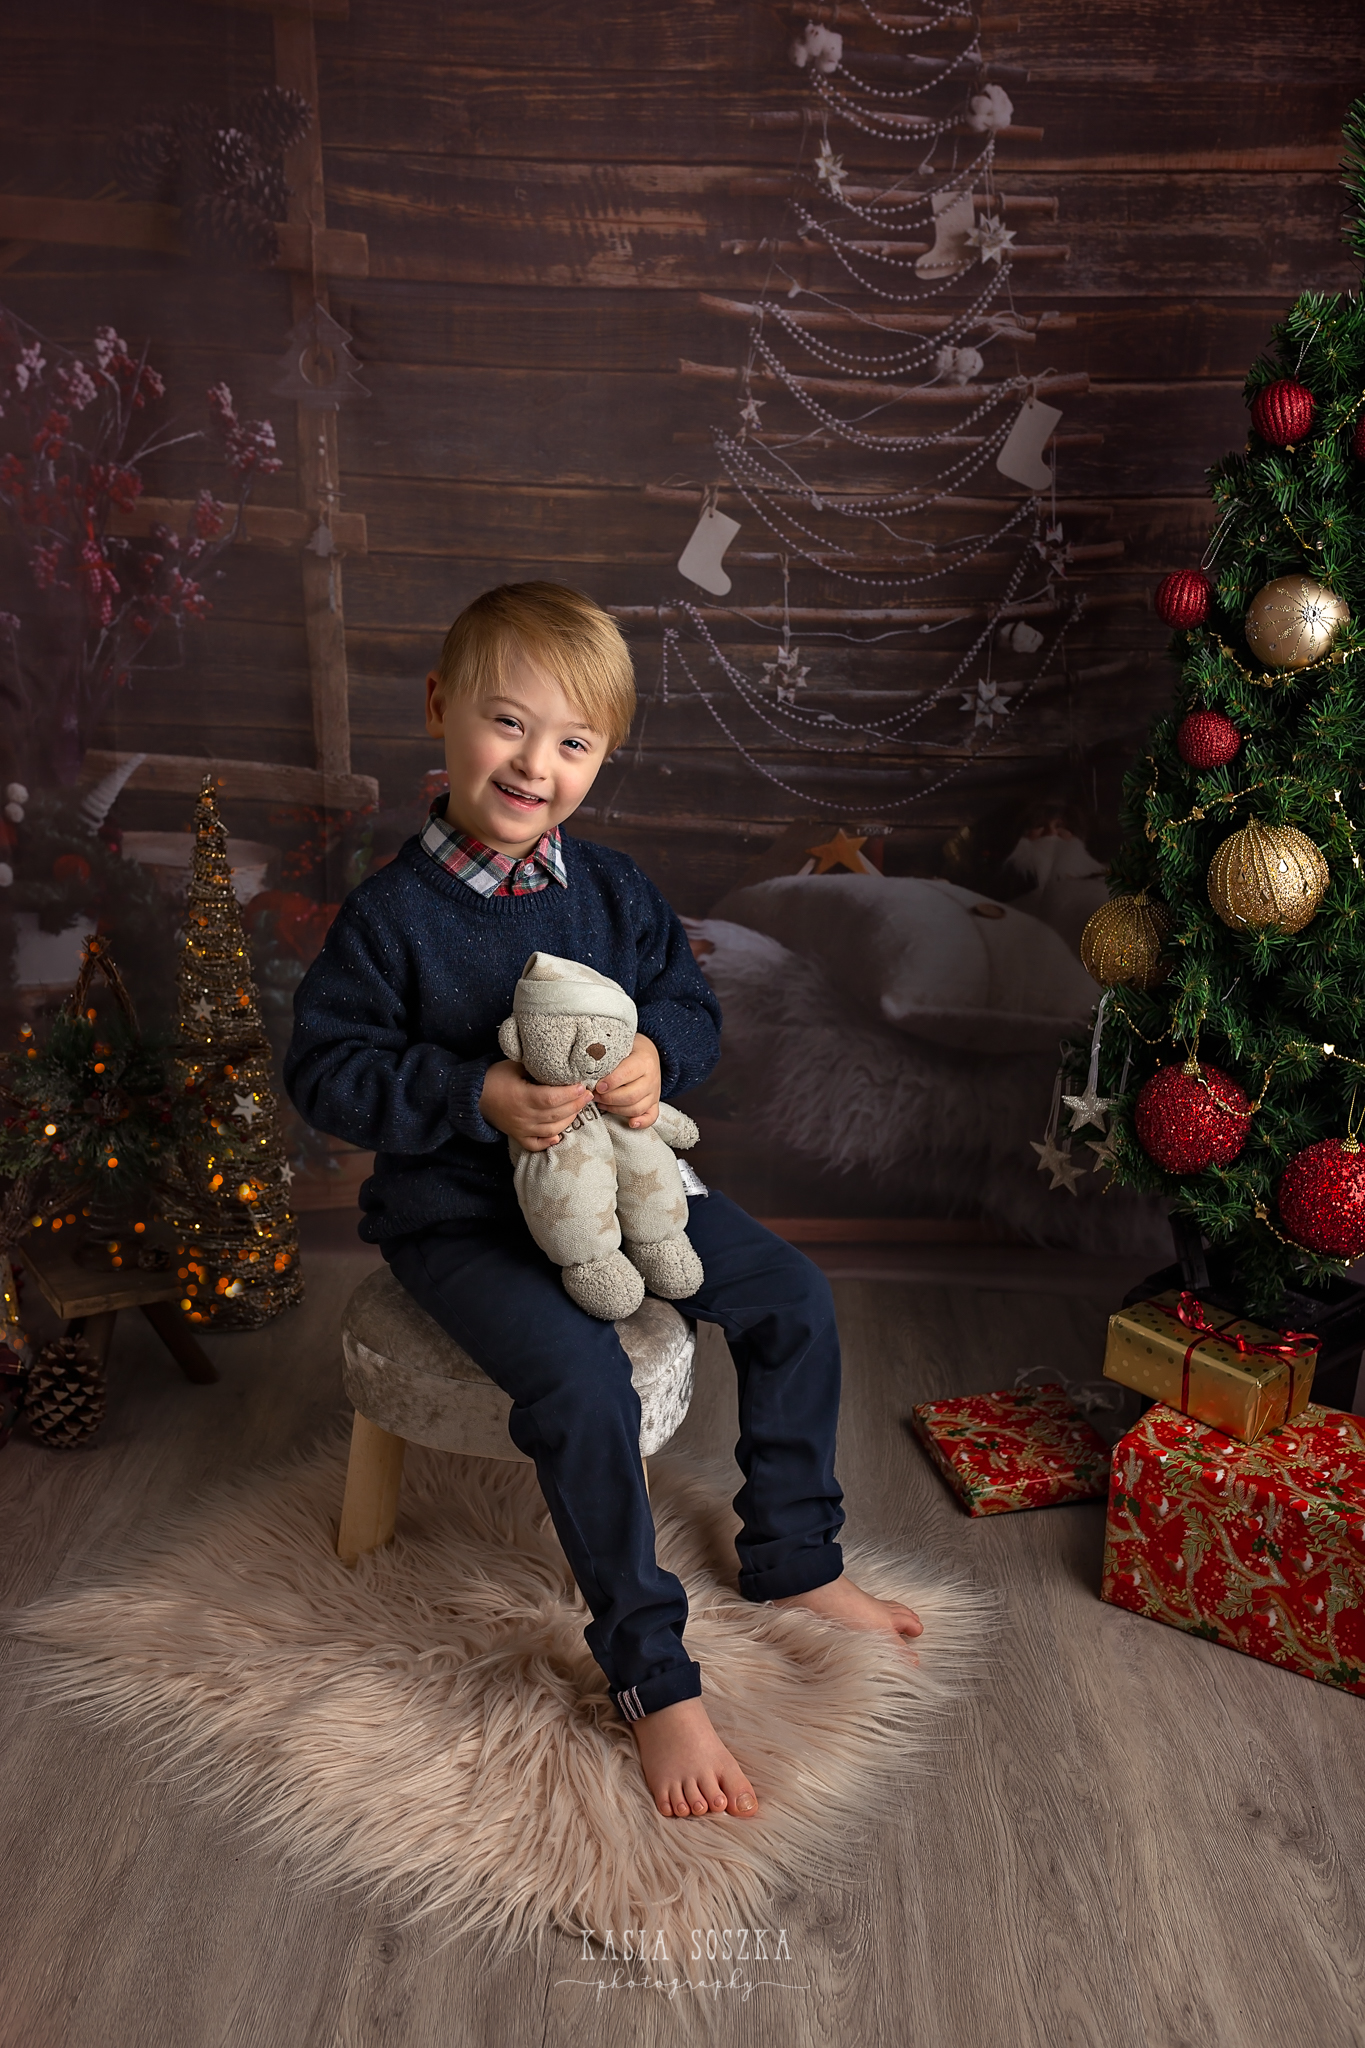 Child photographer Leeds, York, Bradford, Harrogate. Christmas Mini Sessions 2018 Leeds: cute little boy posing for a Christmas photo